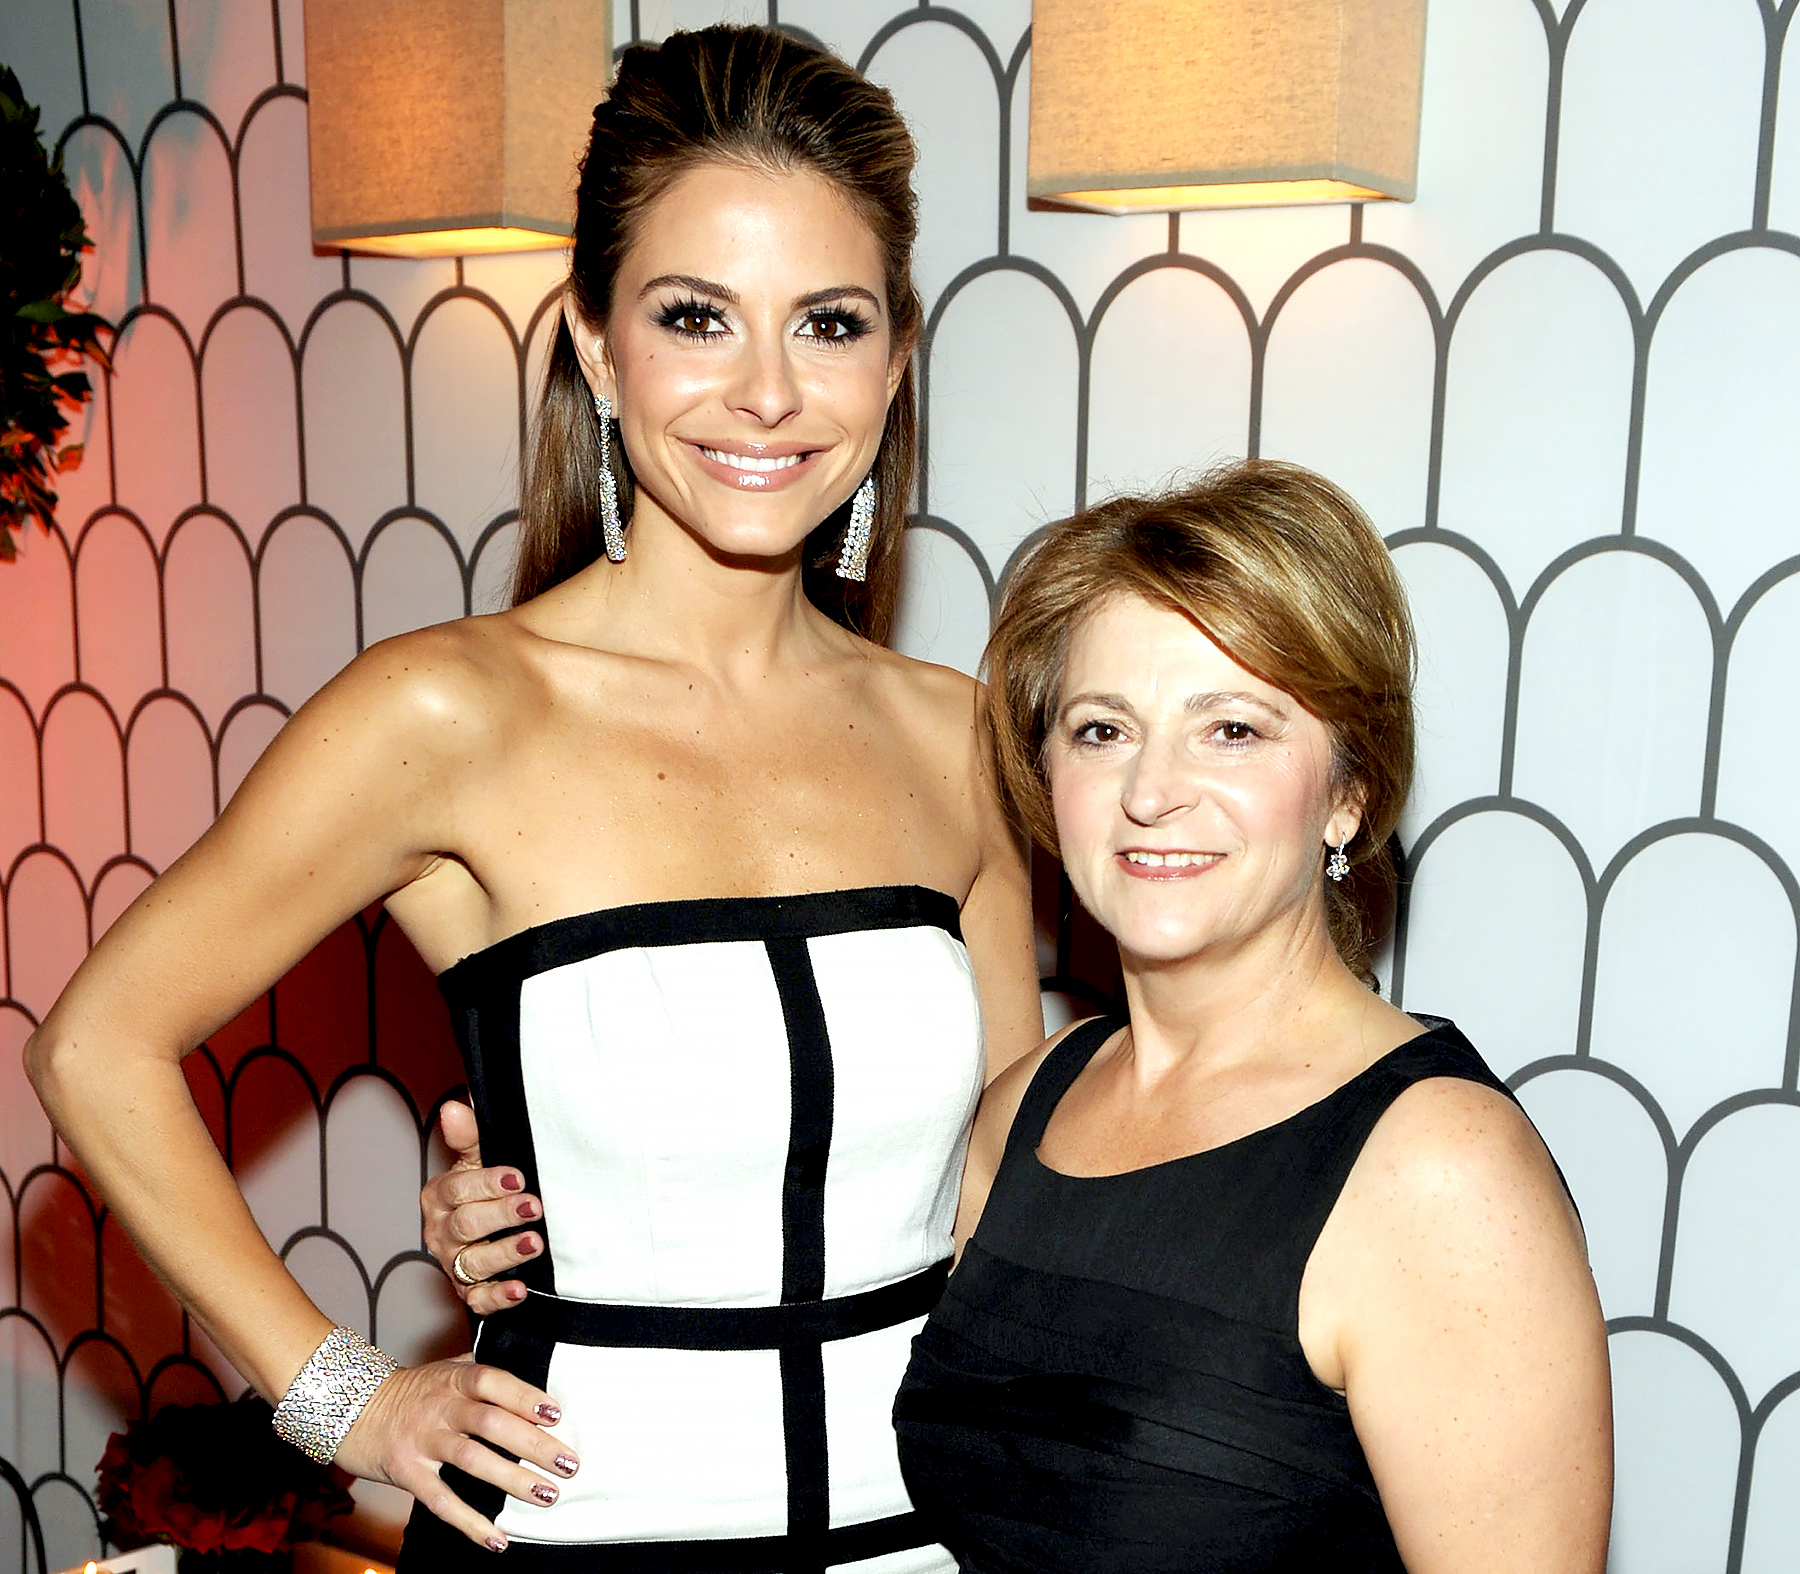 Maria Menounos and Litsa Menounos attend the Kick Off for Golden Globes Week 2012 hosted by Audi and Martin Katz at Cecconi's Restaurant on January 8, 2012 in Los Angeles, California.